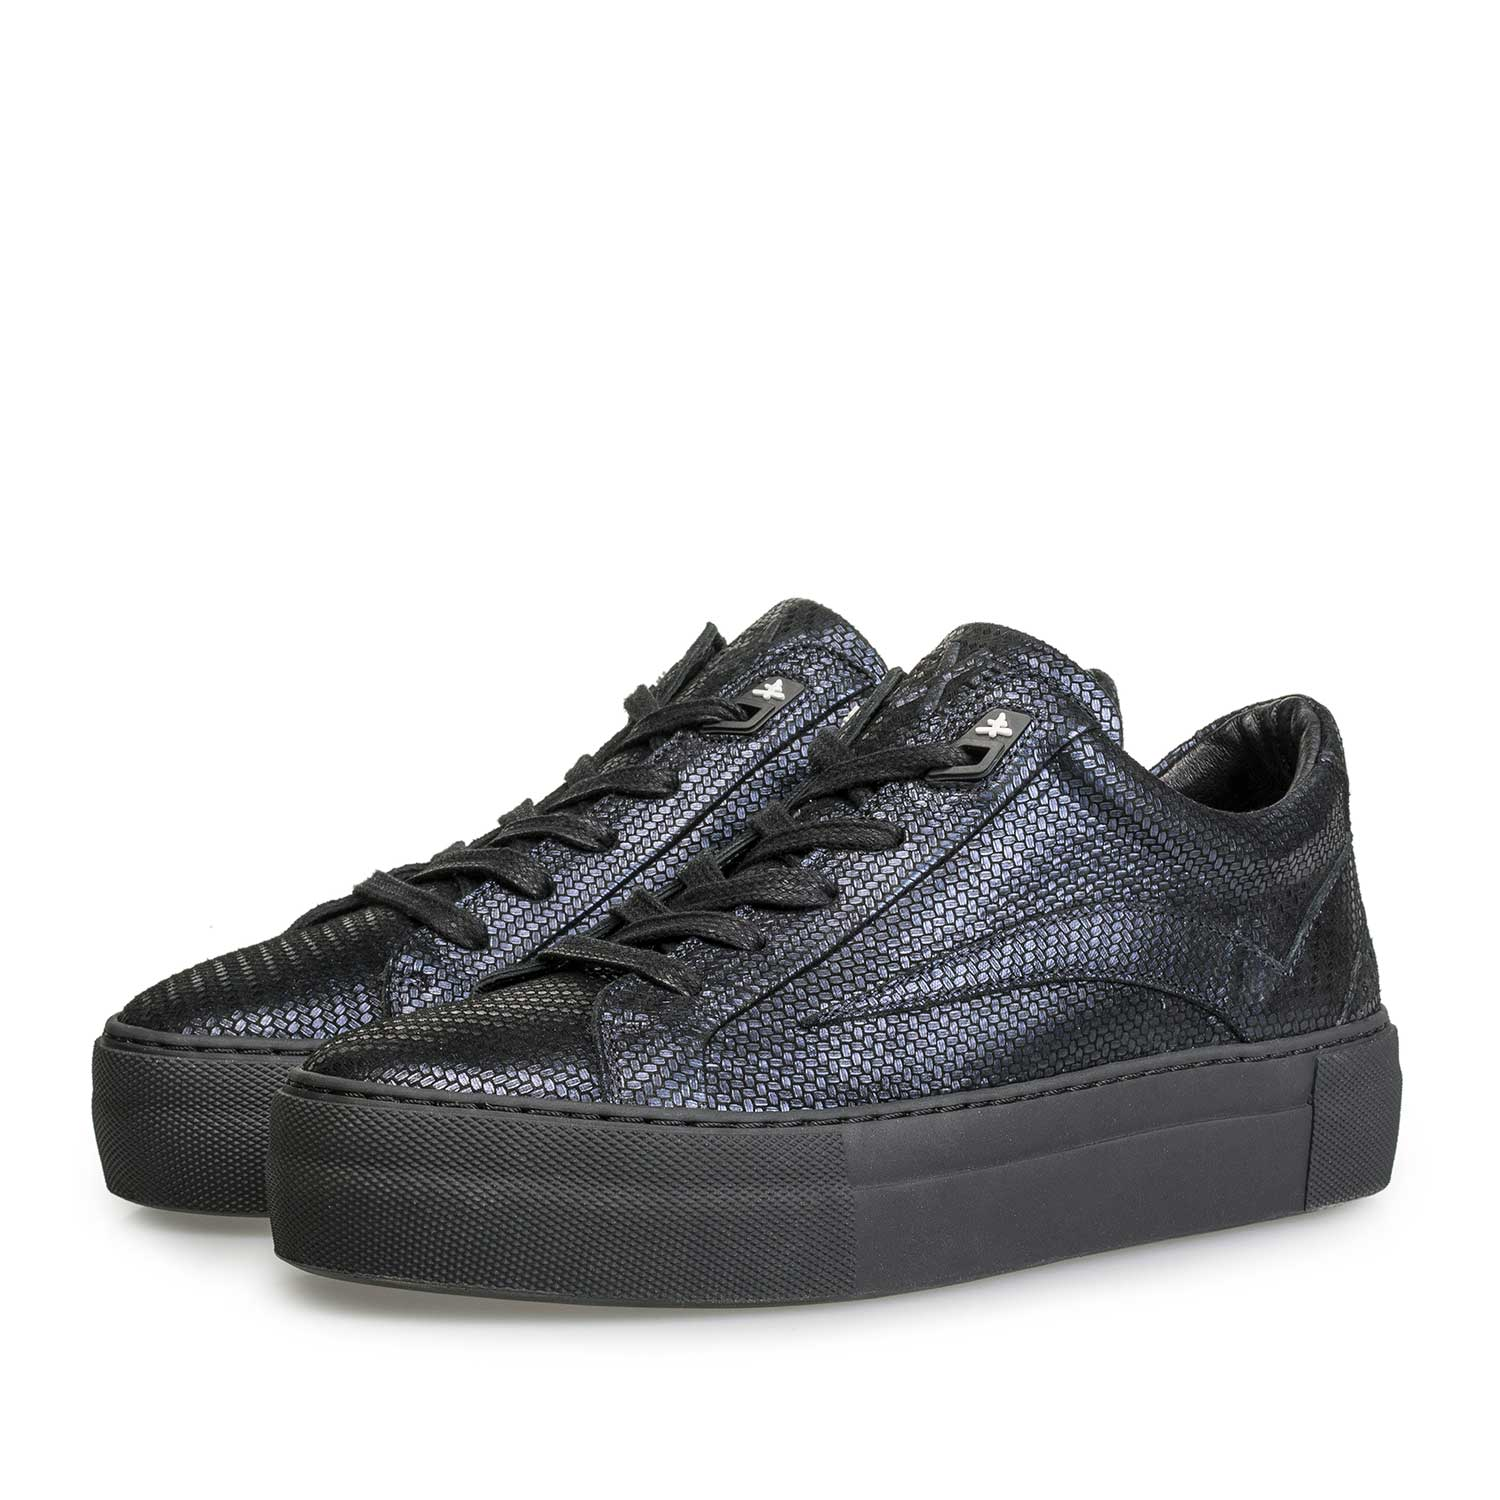 85252/04 - Blue leather sneaker with metallic print